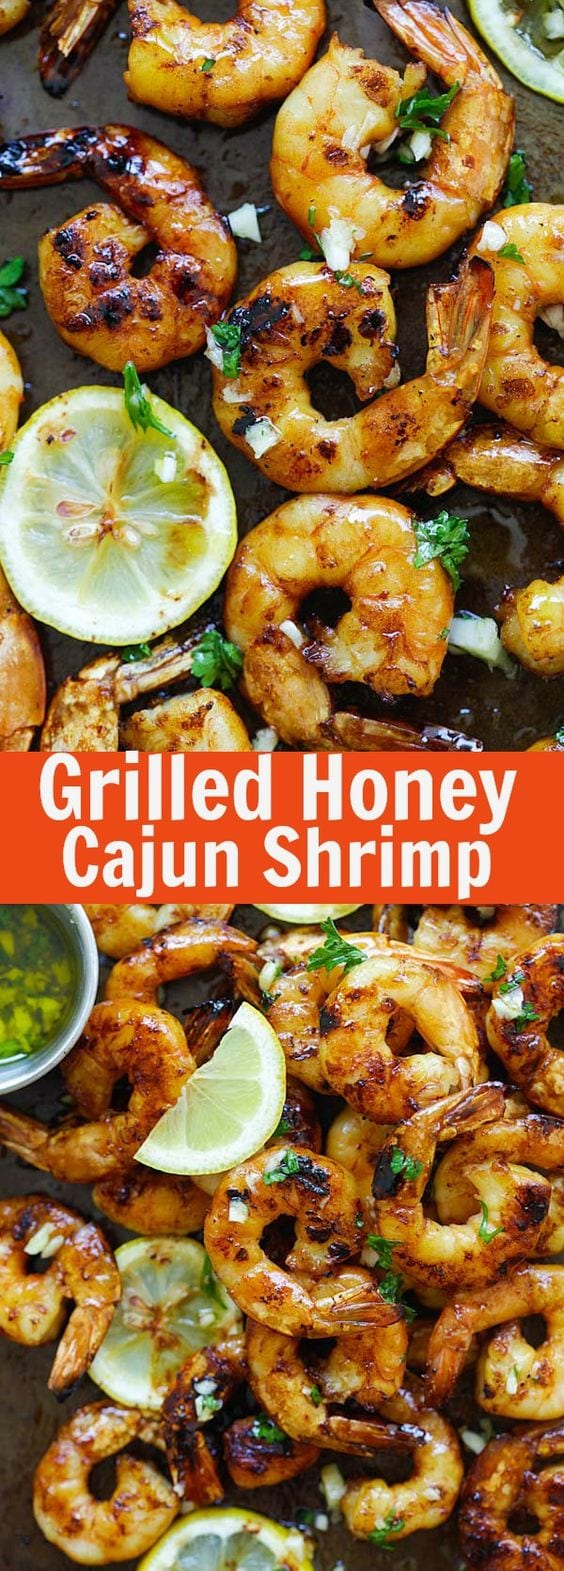 Grilled Honey Cajun Shrimp – amazing grilled shrimp with honey cajun seasonings. Sweet, spicy, the best and easiest cajun shrimp ever | rasamalaysia.com